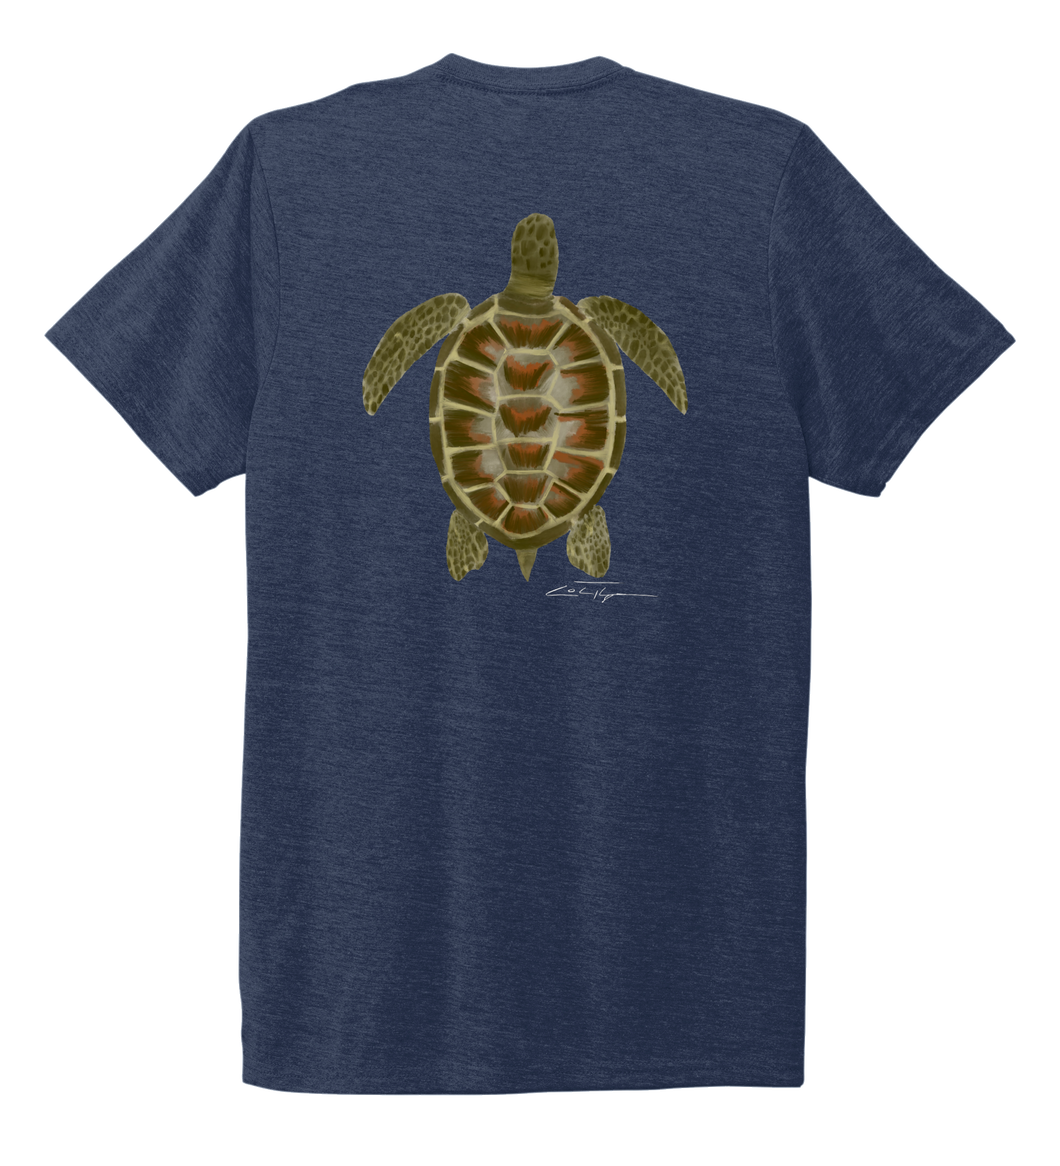 Colin Thompson, Turtle, Crew Neck T-Shirt in Deep Sea Blue